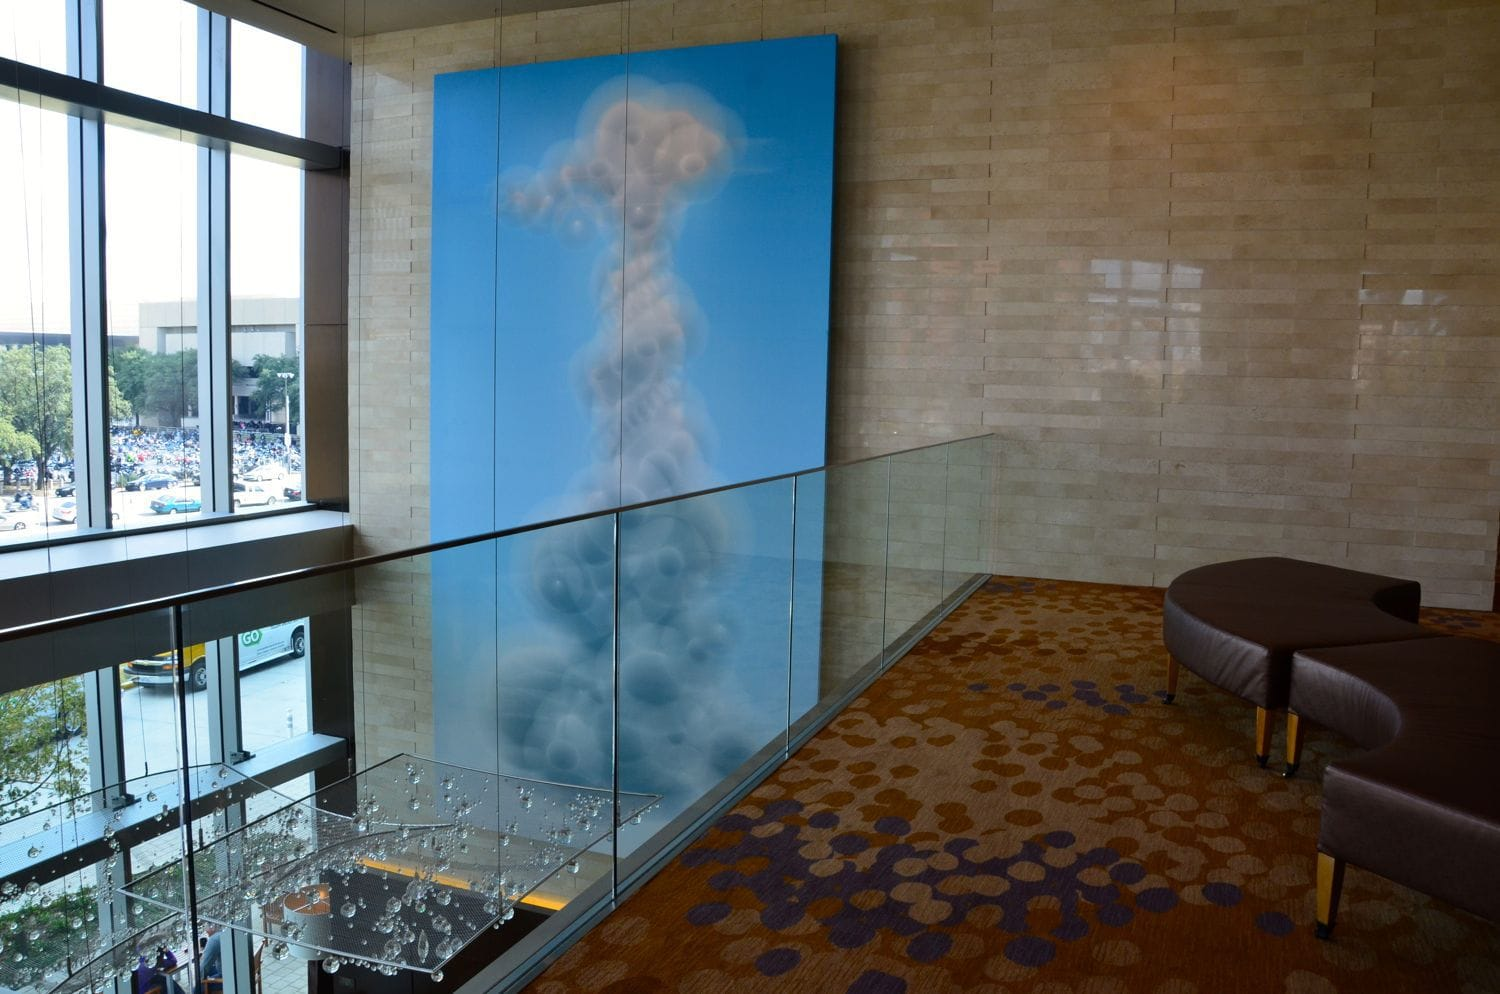 Dallas Art Lives at the Omni